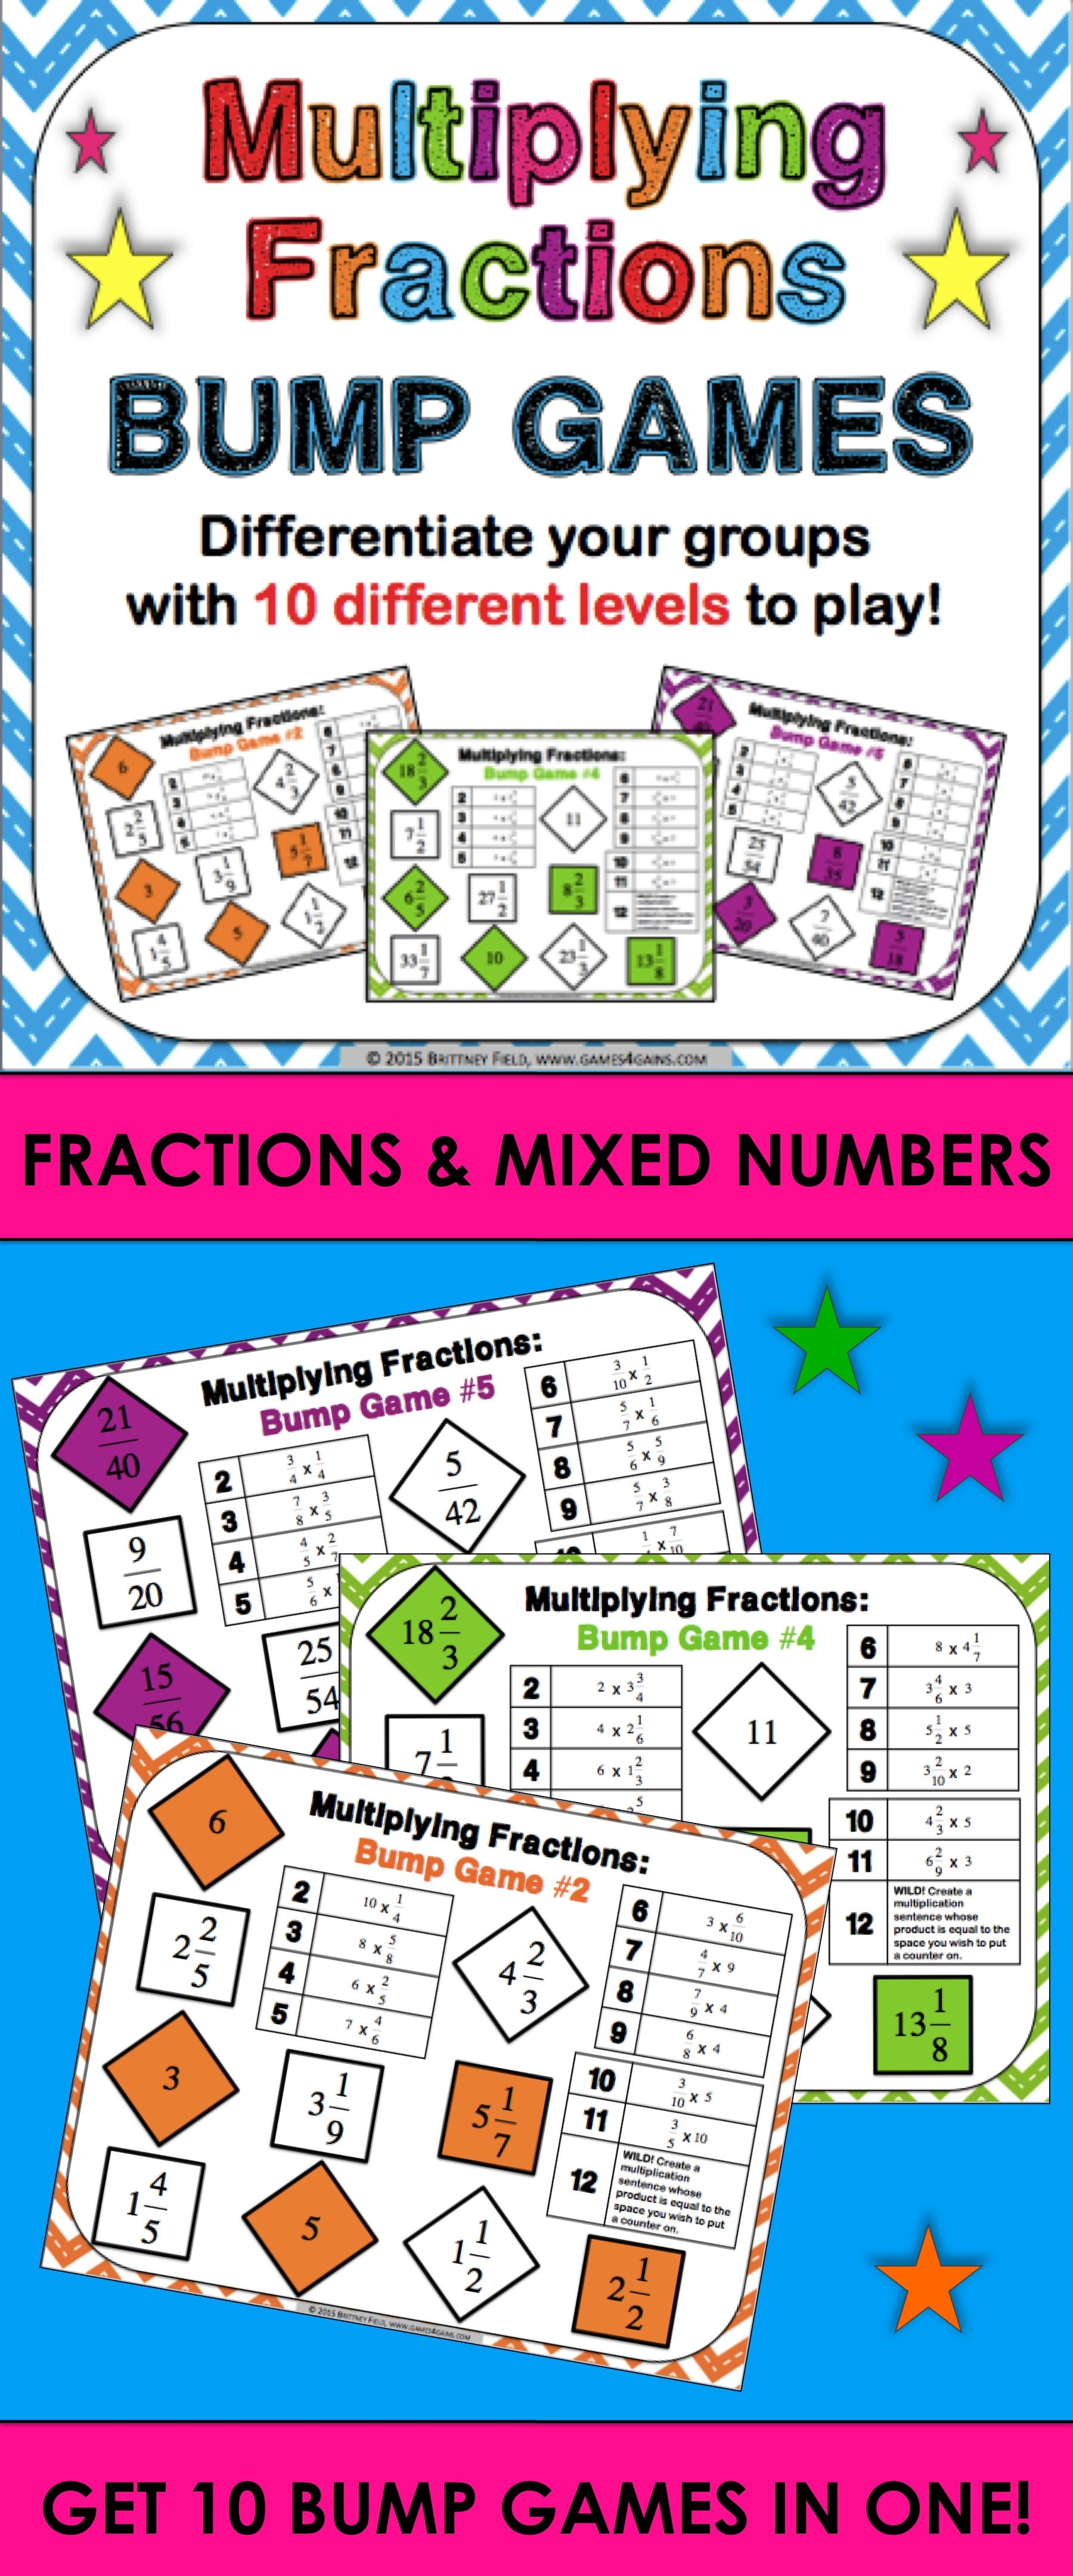 Multiplying Fractions Amp Multiplying Mixed Numbers Bump Games 4 4 5 4